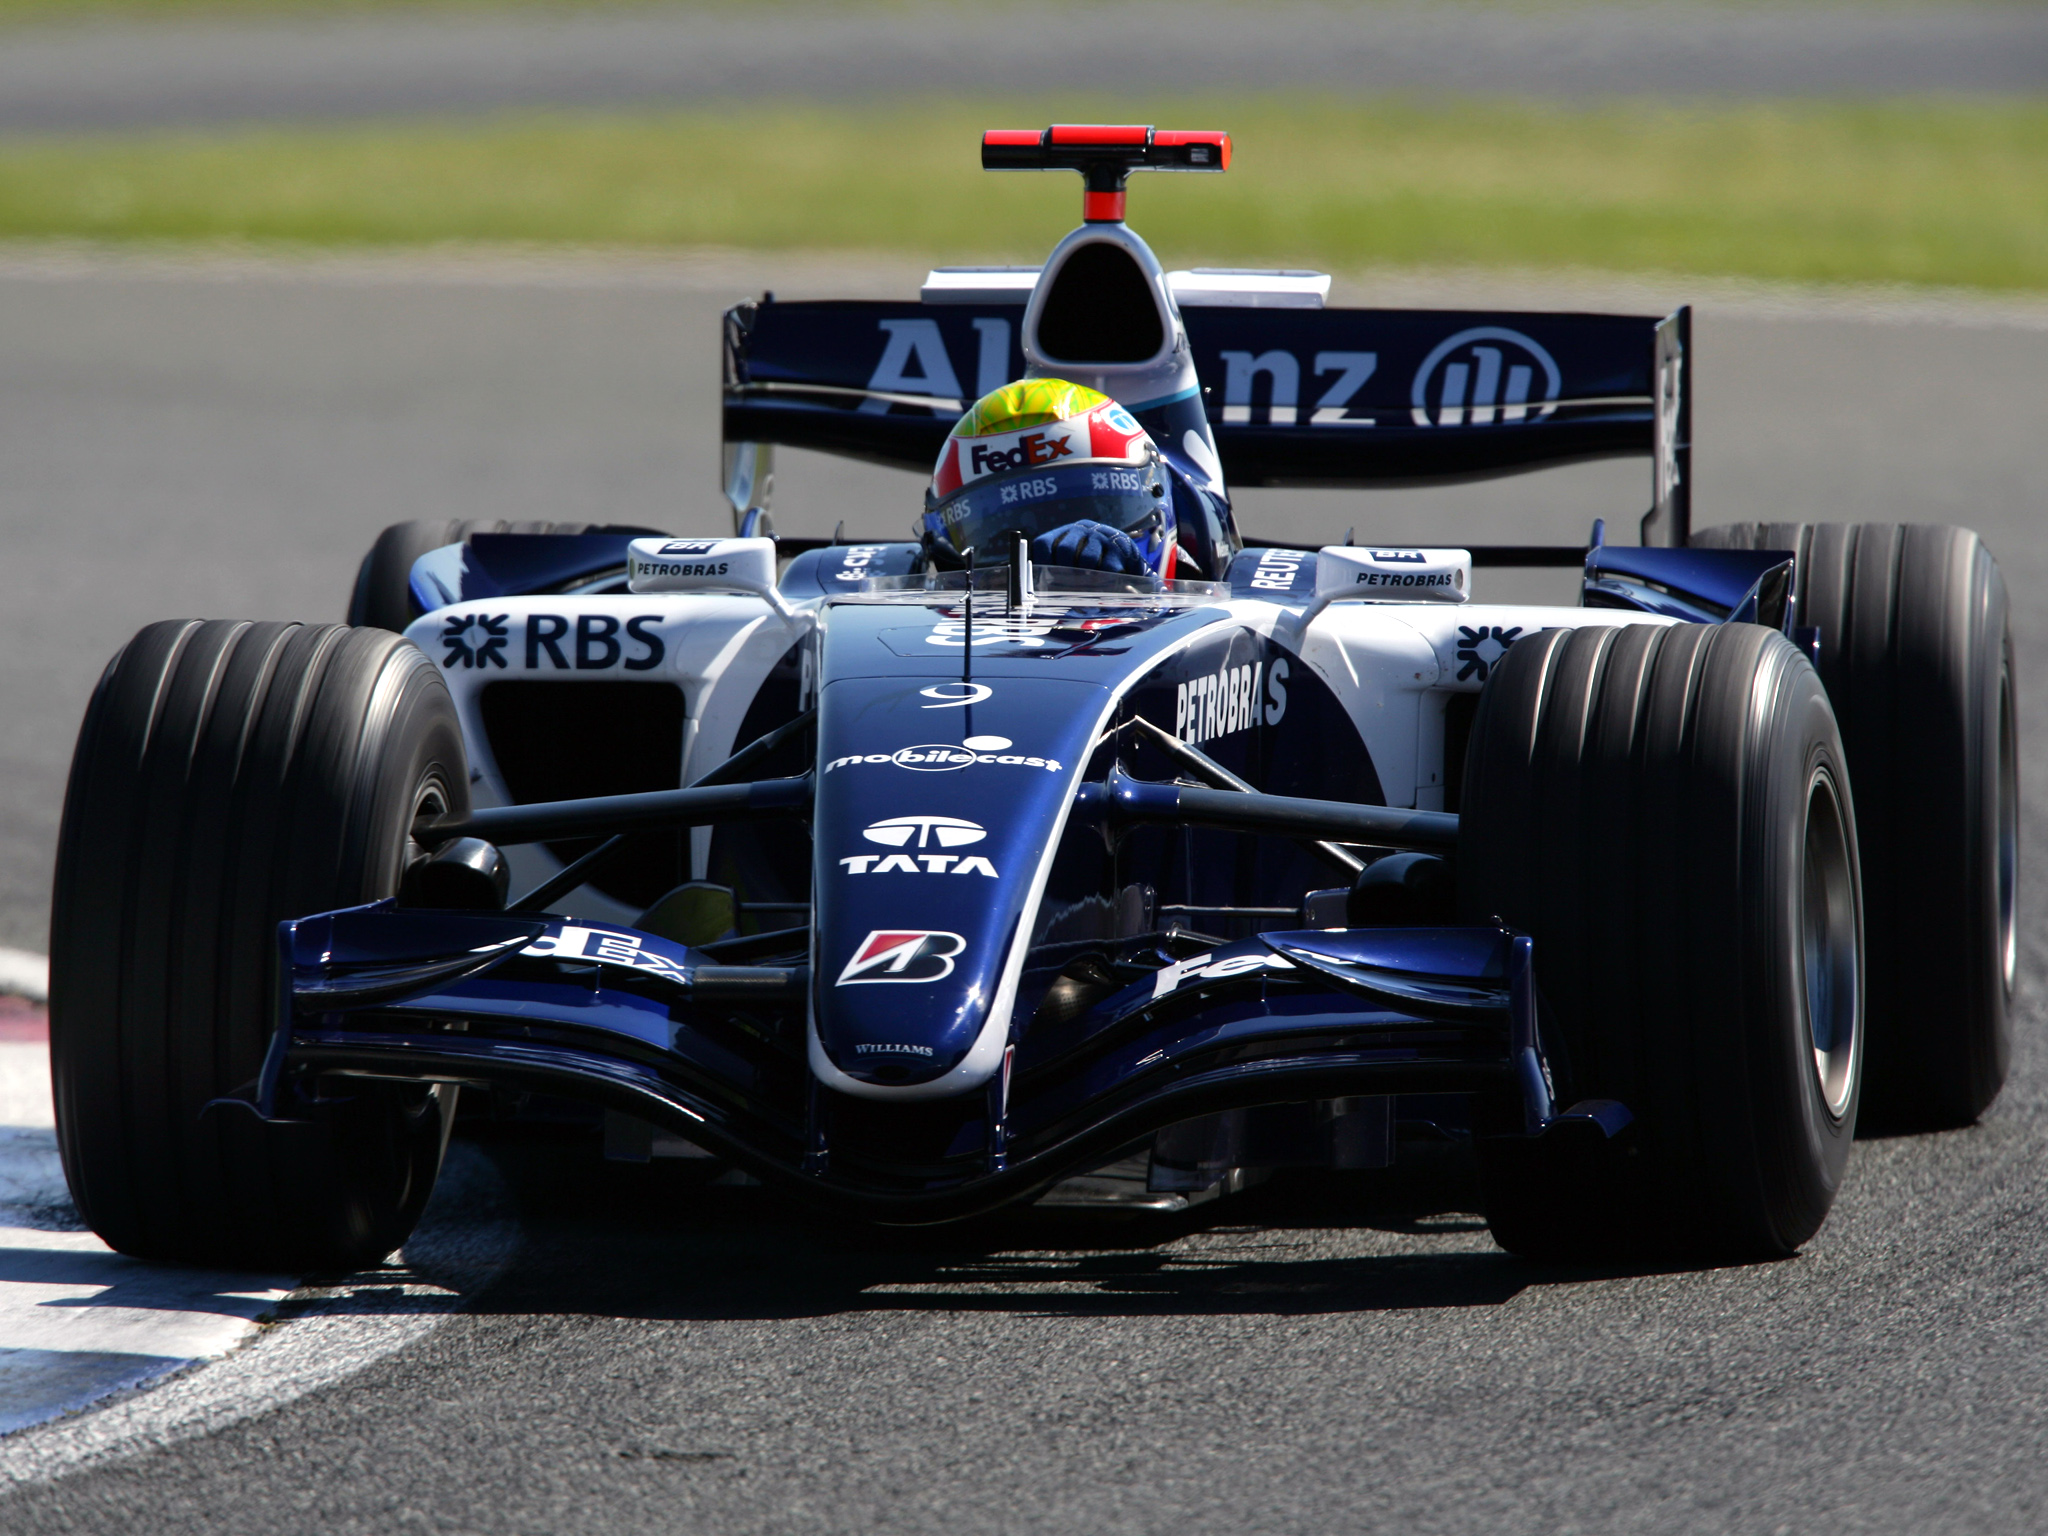 Williams fw28 photo - 3